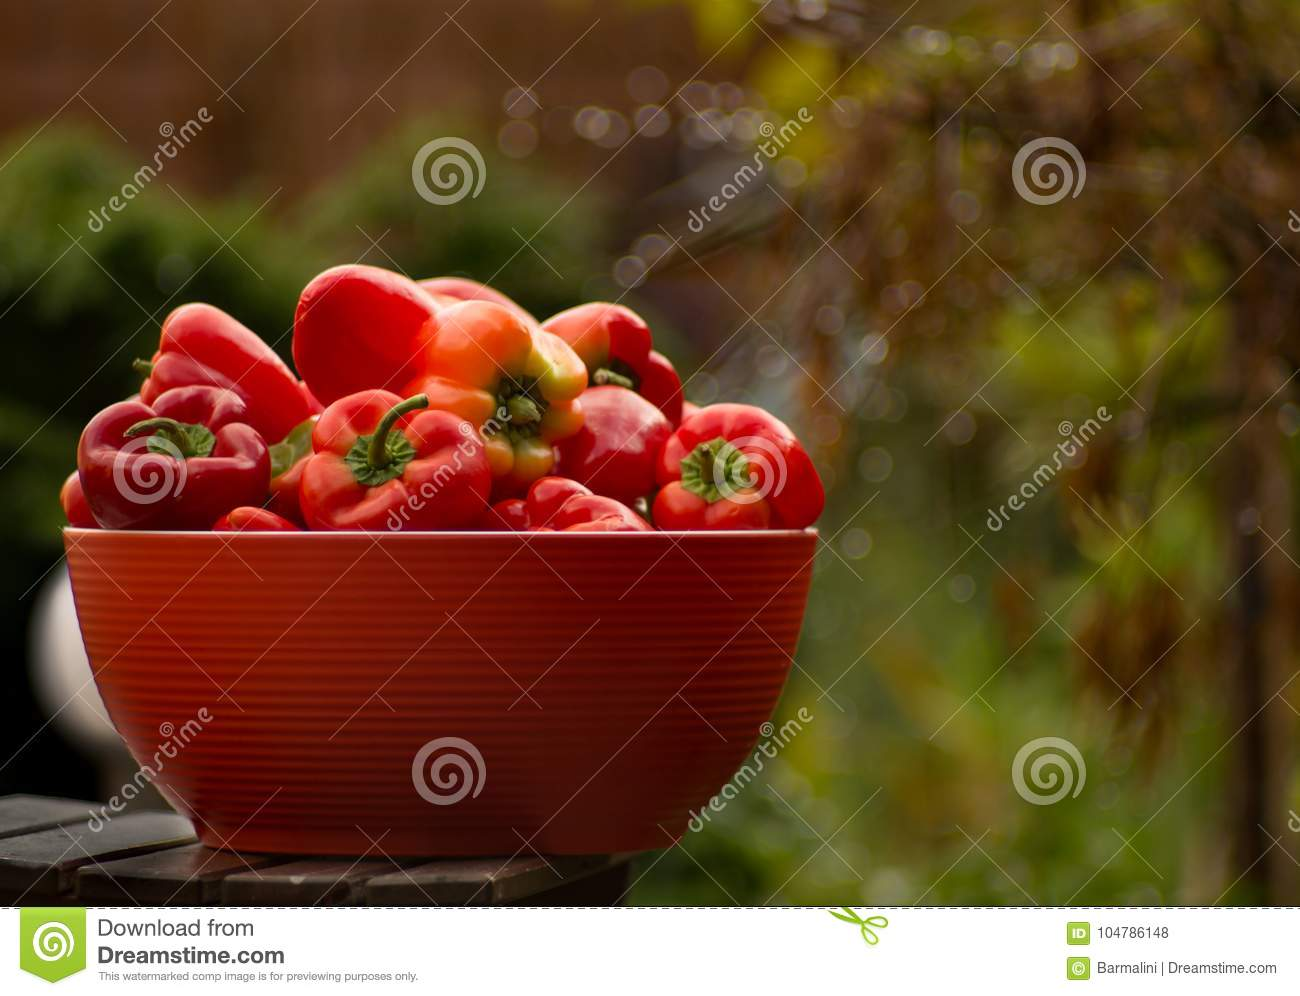 Red Bowl With Fresh Ripe Red Sweet Paprika In Garden Stock Photo ...